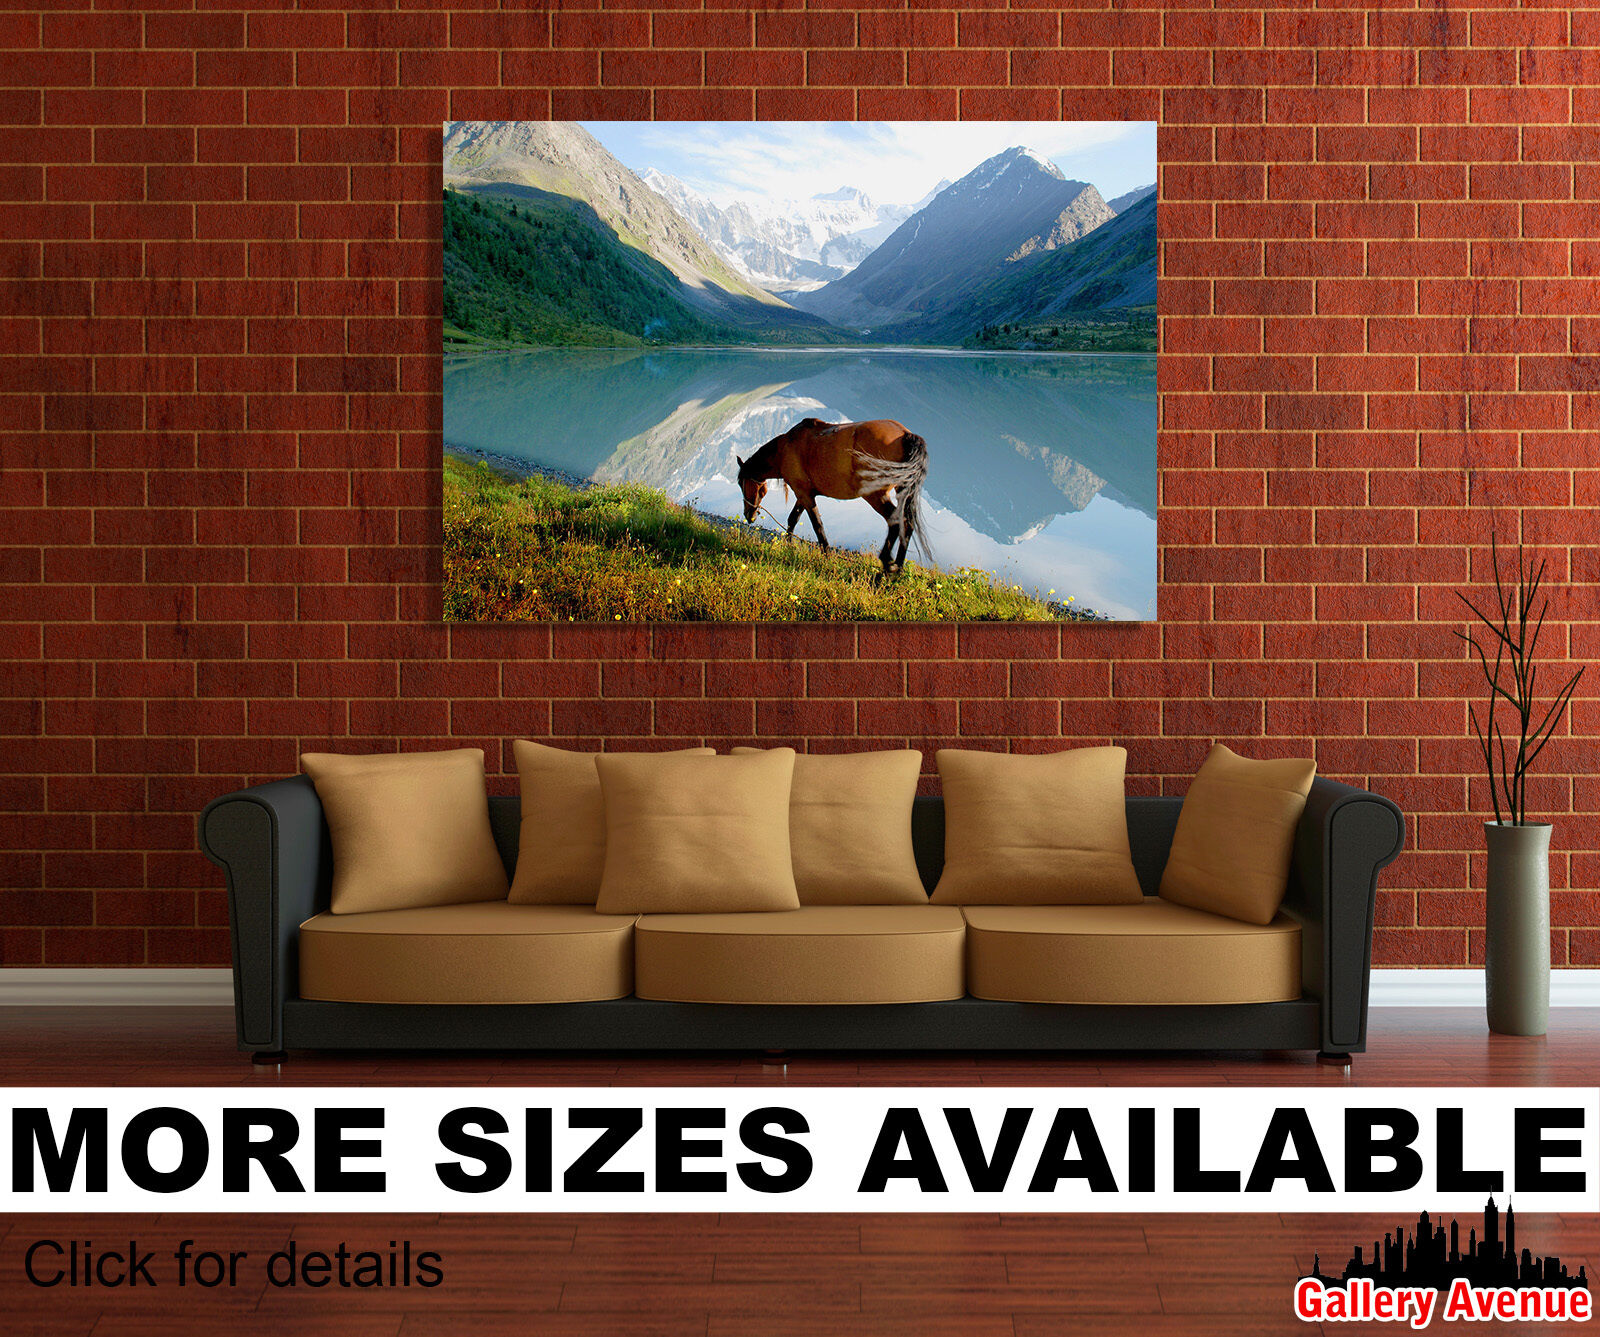 Wall Art Canvas Picture Print - Horse Grazing, Mountains, Lake, Landscape 3.2